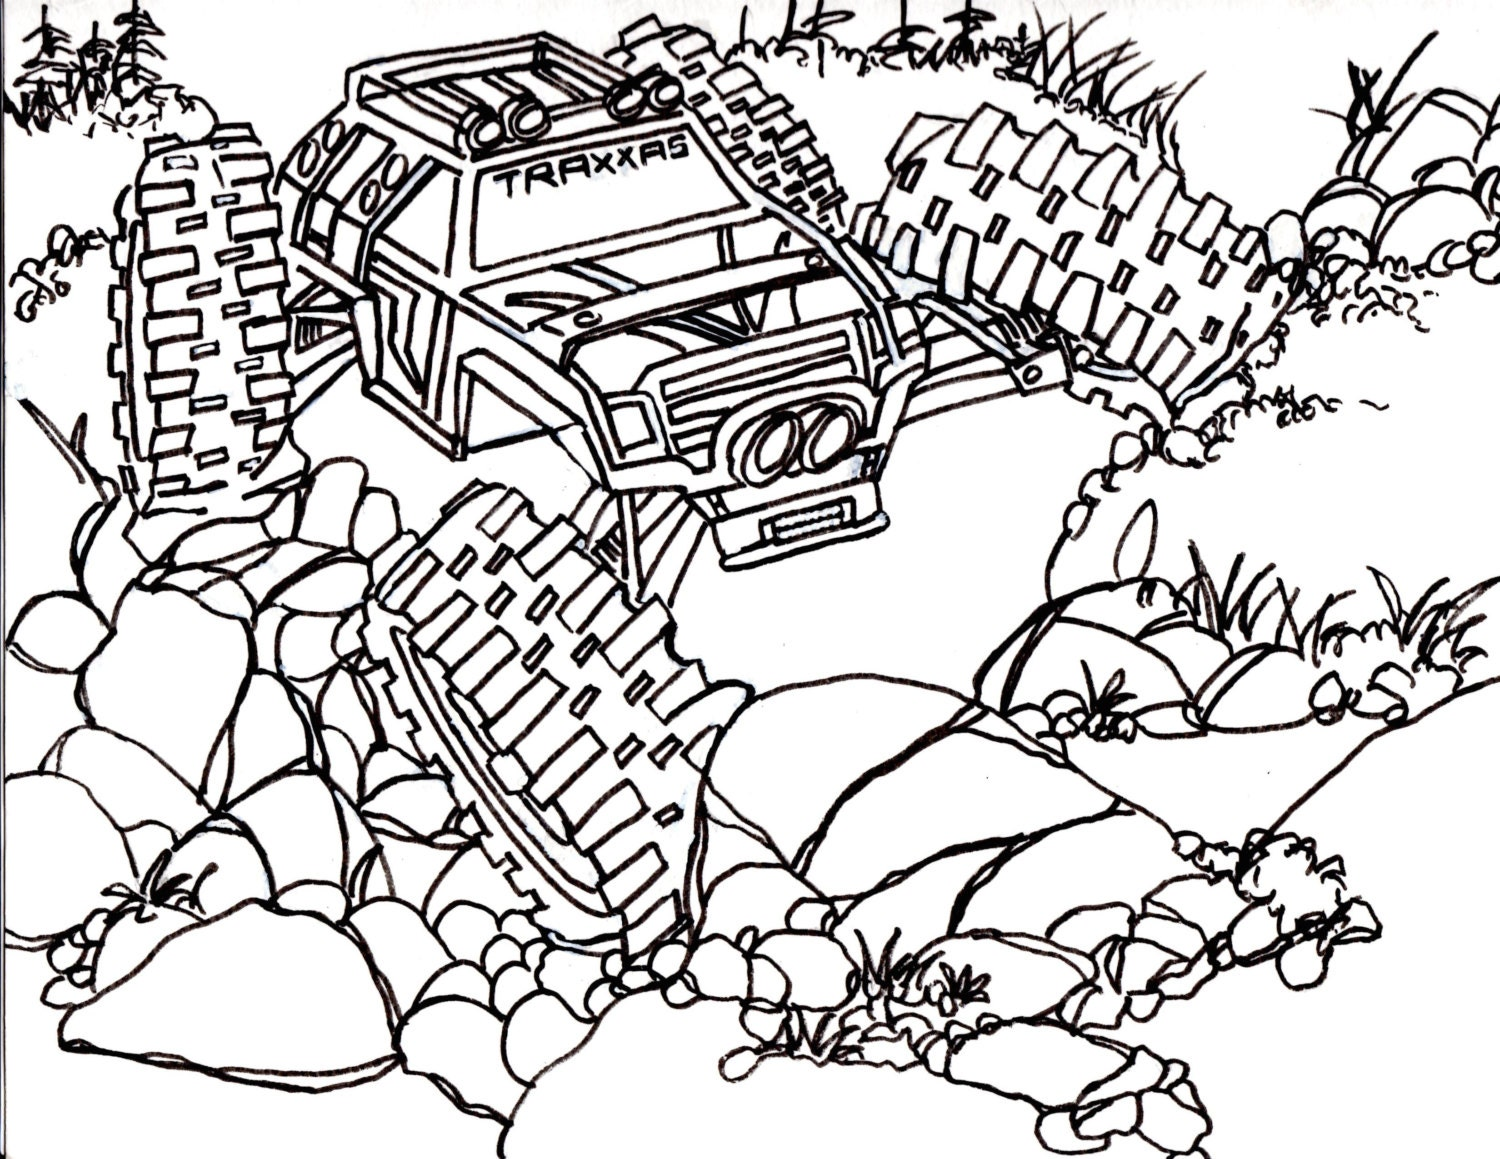 5 traxxas summit coloring pages drawing truck 4x4 rc. Black Bedroom Furniture Sets. Home Design Ideas